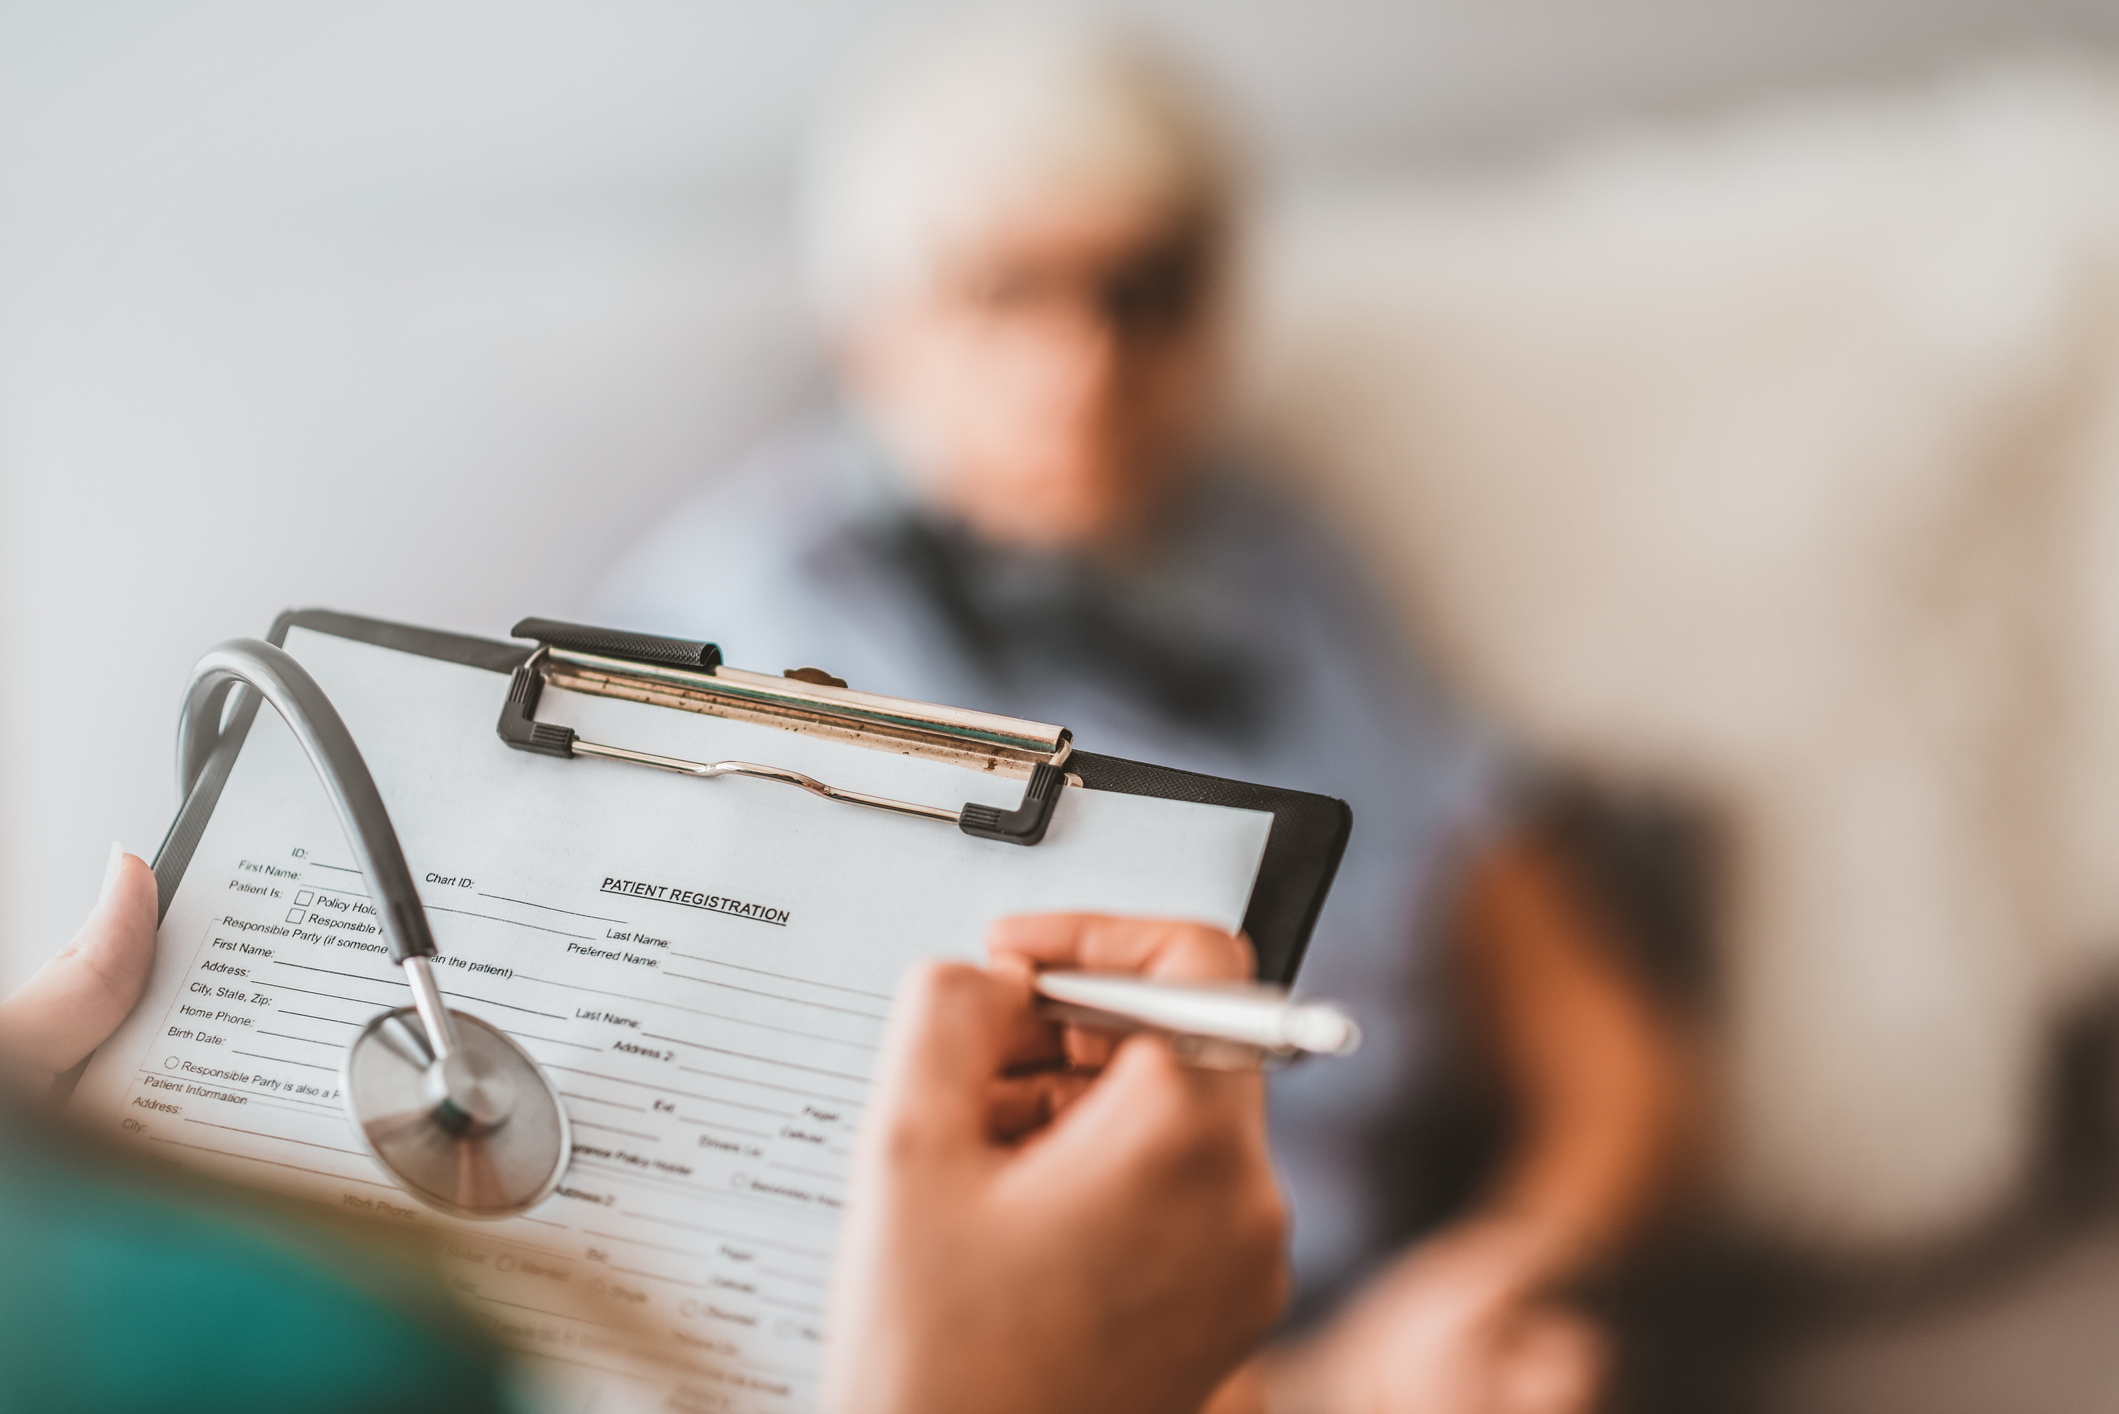 One - Fill out a brief questionnaire to help us get to know you and your treatment goals. We'll provide you with some pre-filled forms for your doctor.